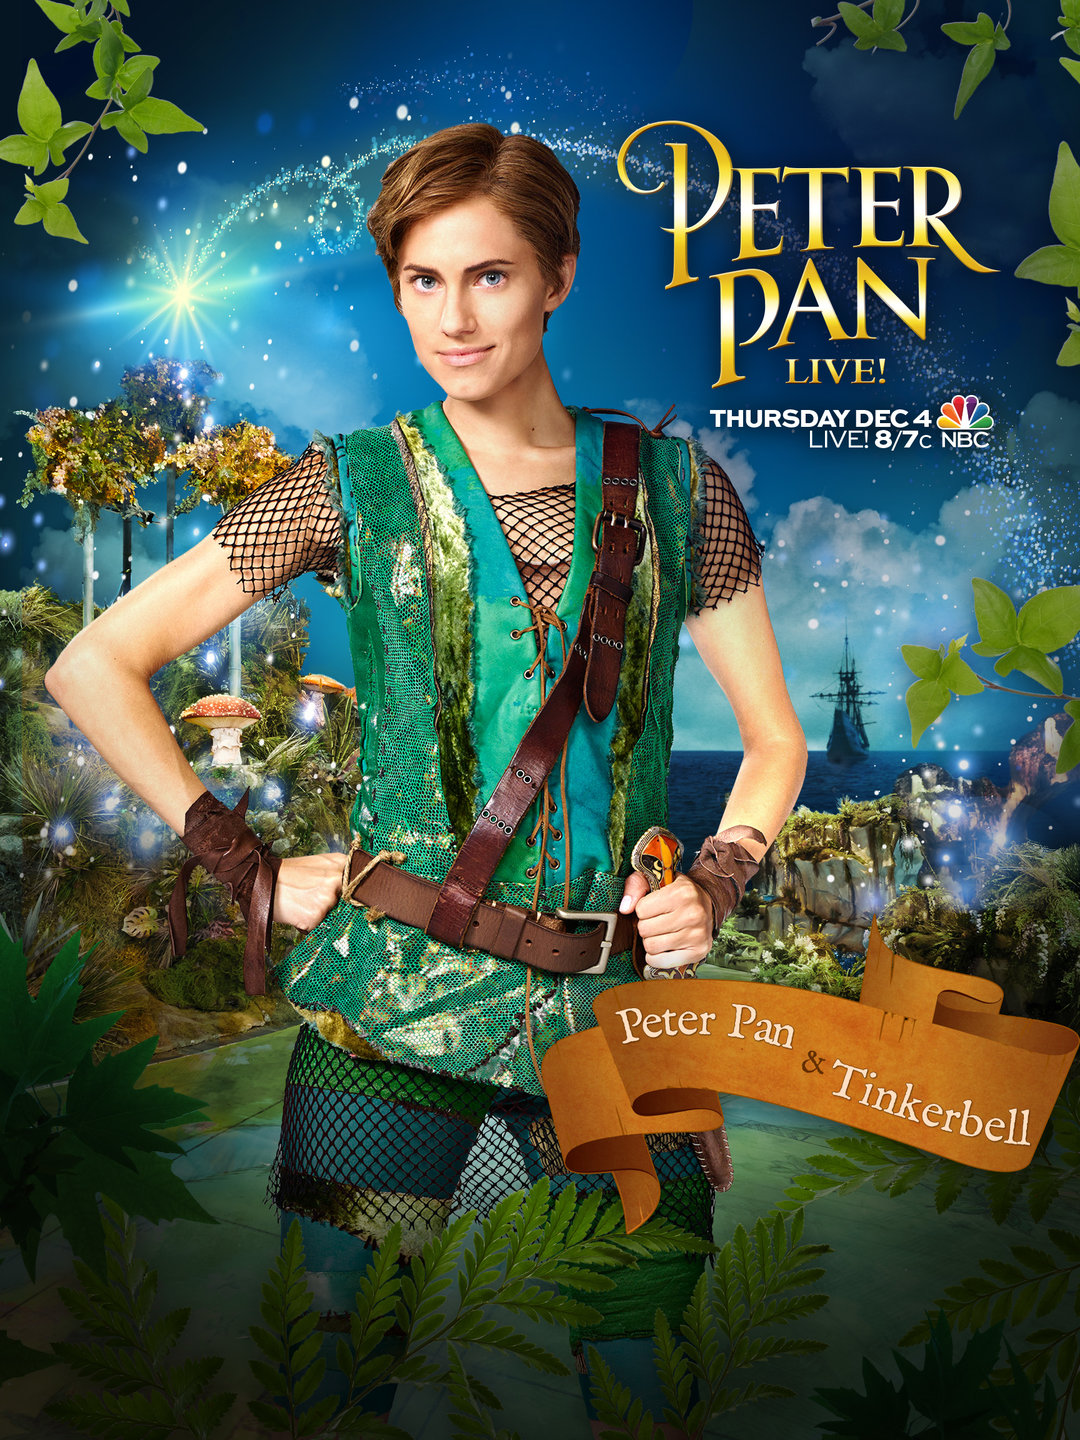 Peter Pan Live Download Peter Pan Live Posters Photo